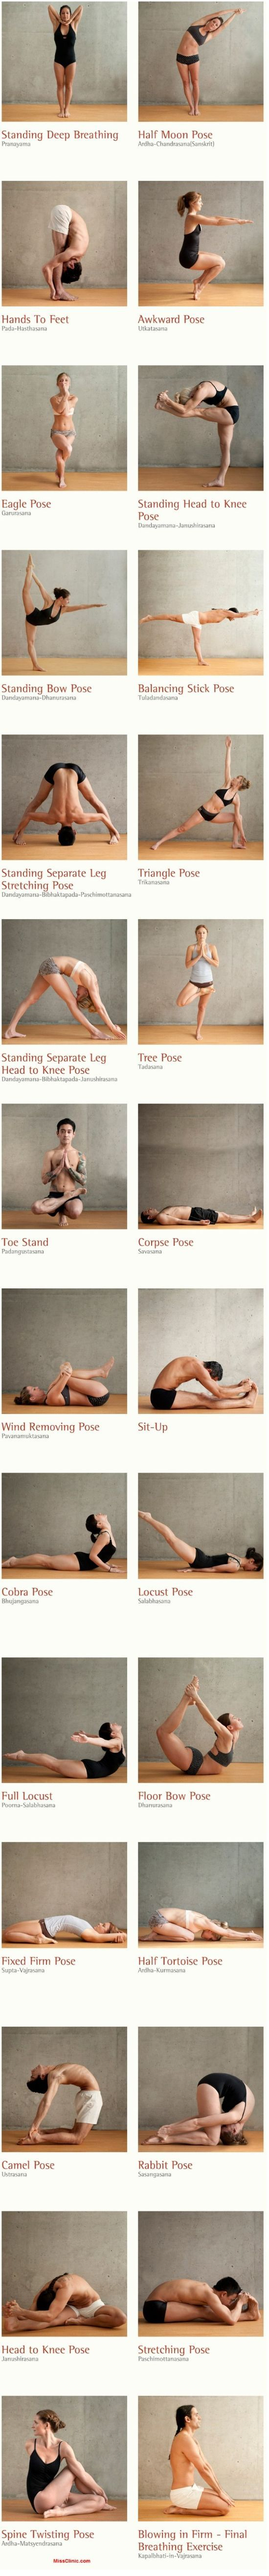 26 Healthy Yoga Postures - Consisting of 26 postures and 2 breathing exercises, Bikram Yoga positions focuses on 100% of the human body, working from the inside out. The 26 Bikram yoga poses invigorate by stimulating the organs, glands, and nerves; each pose helping to move fresh oxygen through the body.